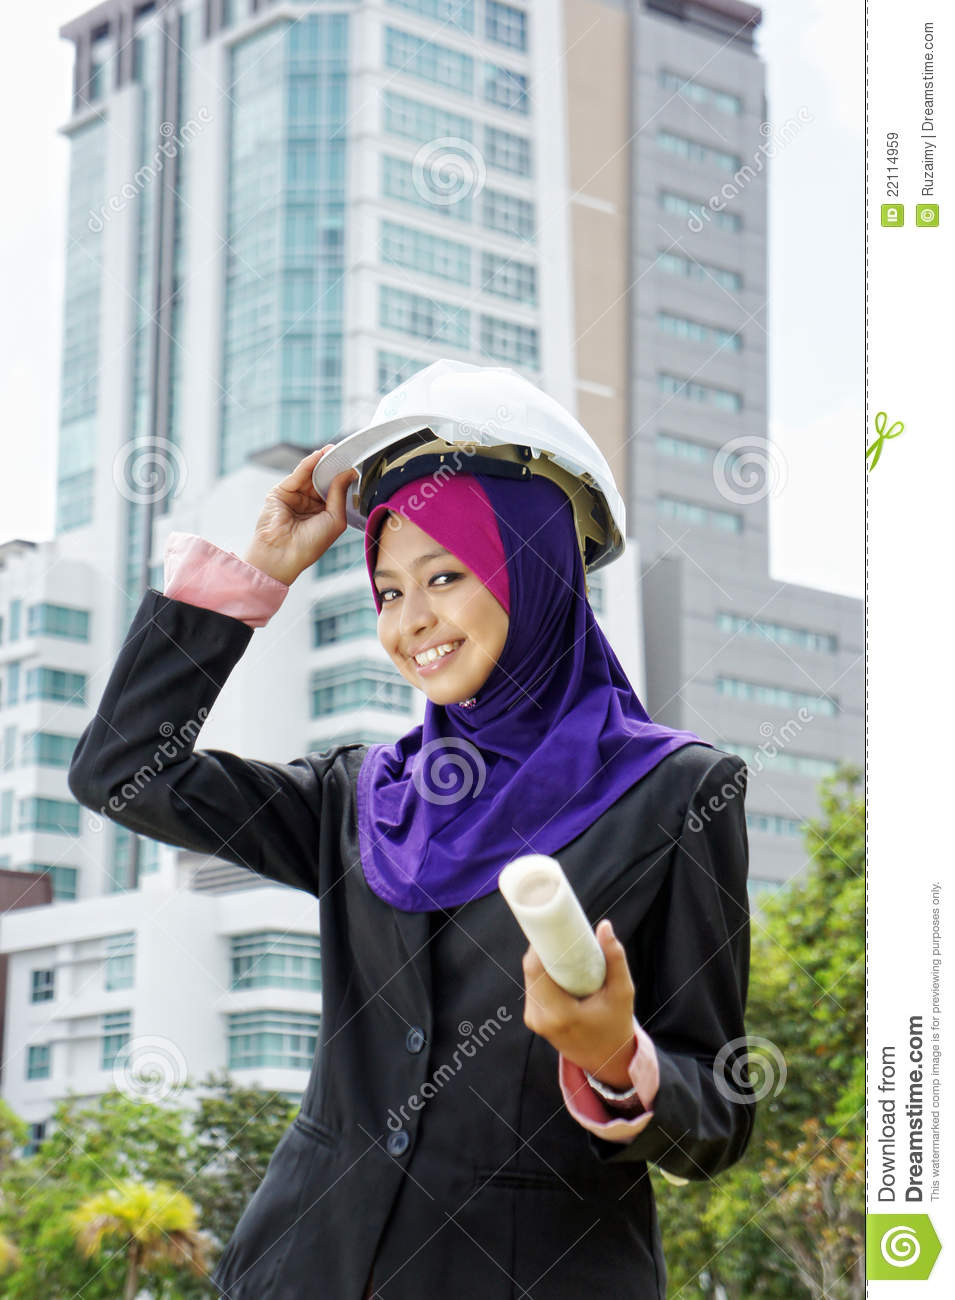 conner muslim women dating site Muslim dating is designed to fit the needs of muslim men you have the same mindset and religion, which is the best ground for building a strong partnership these muslim women are here just for you.